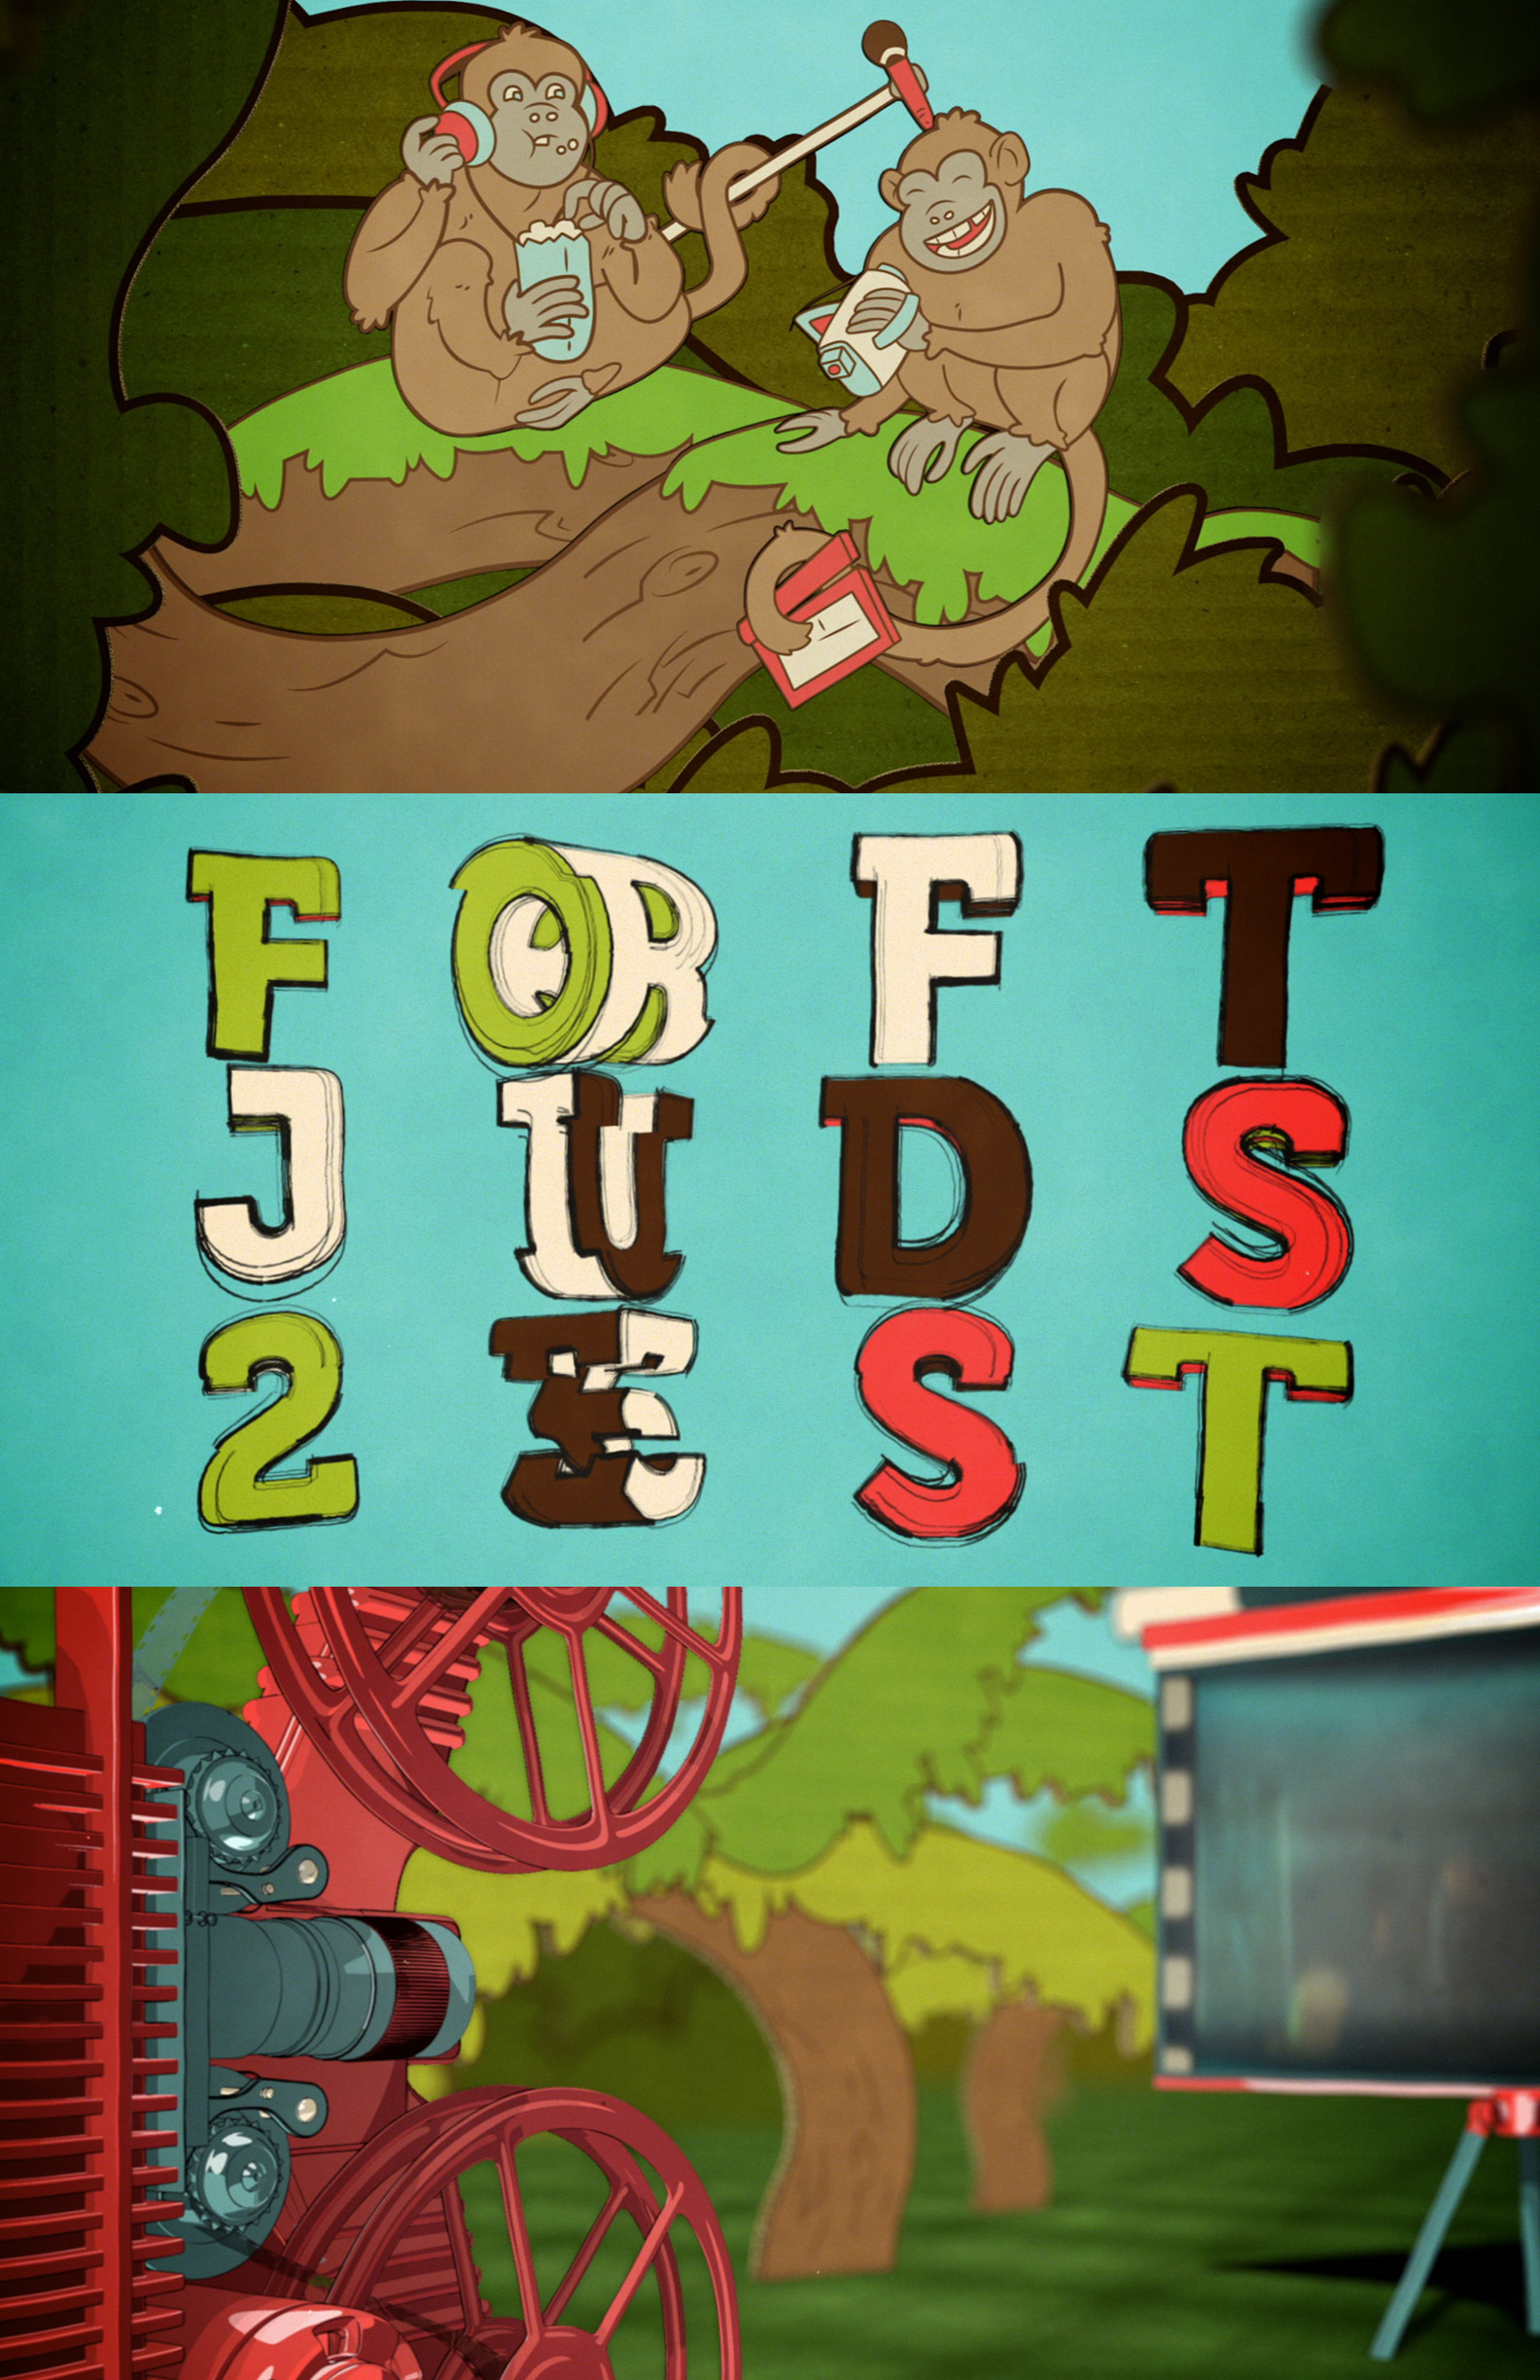 Loft Kids Fest 2016 - Animated Promo Trio